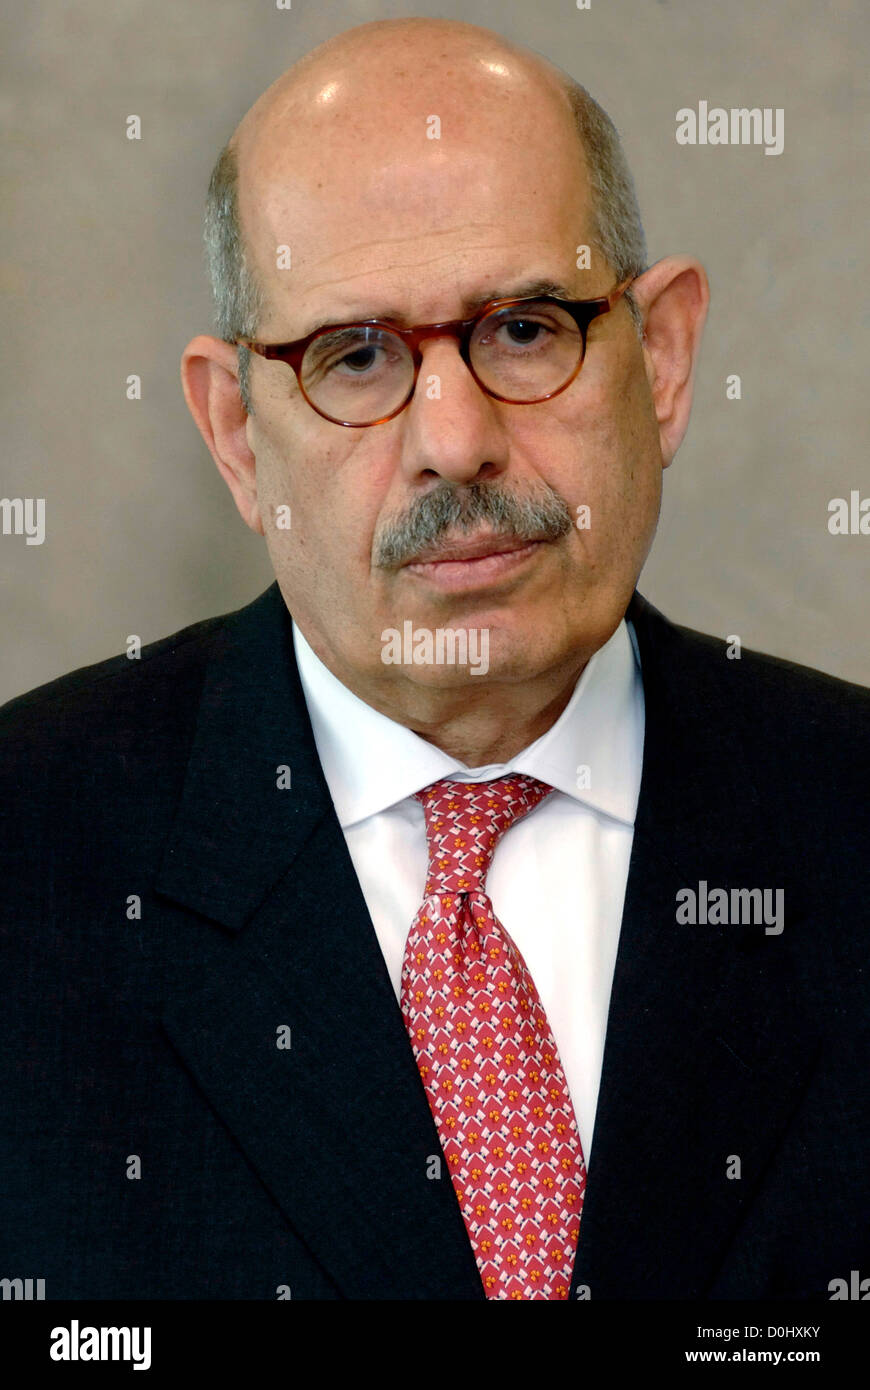 Mohammed El Baradei - * 17.06.1942: Egyptian diplomat, Nobel Peace Prize 2005, General Director of the IAEA of 1997 - Stock Image